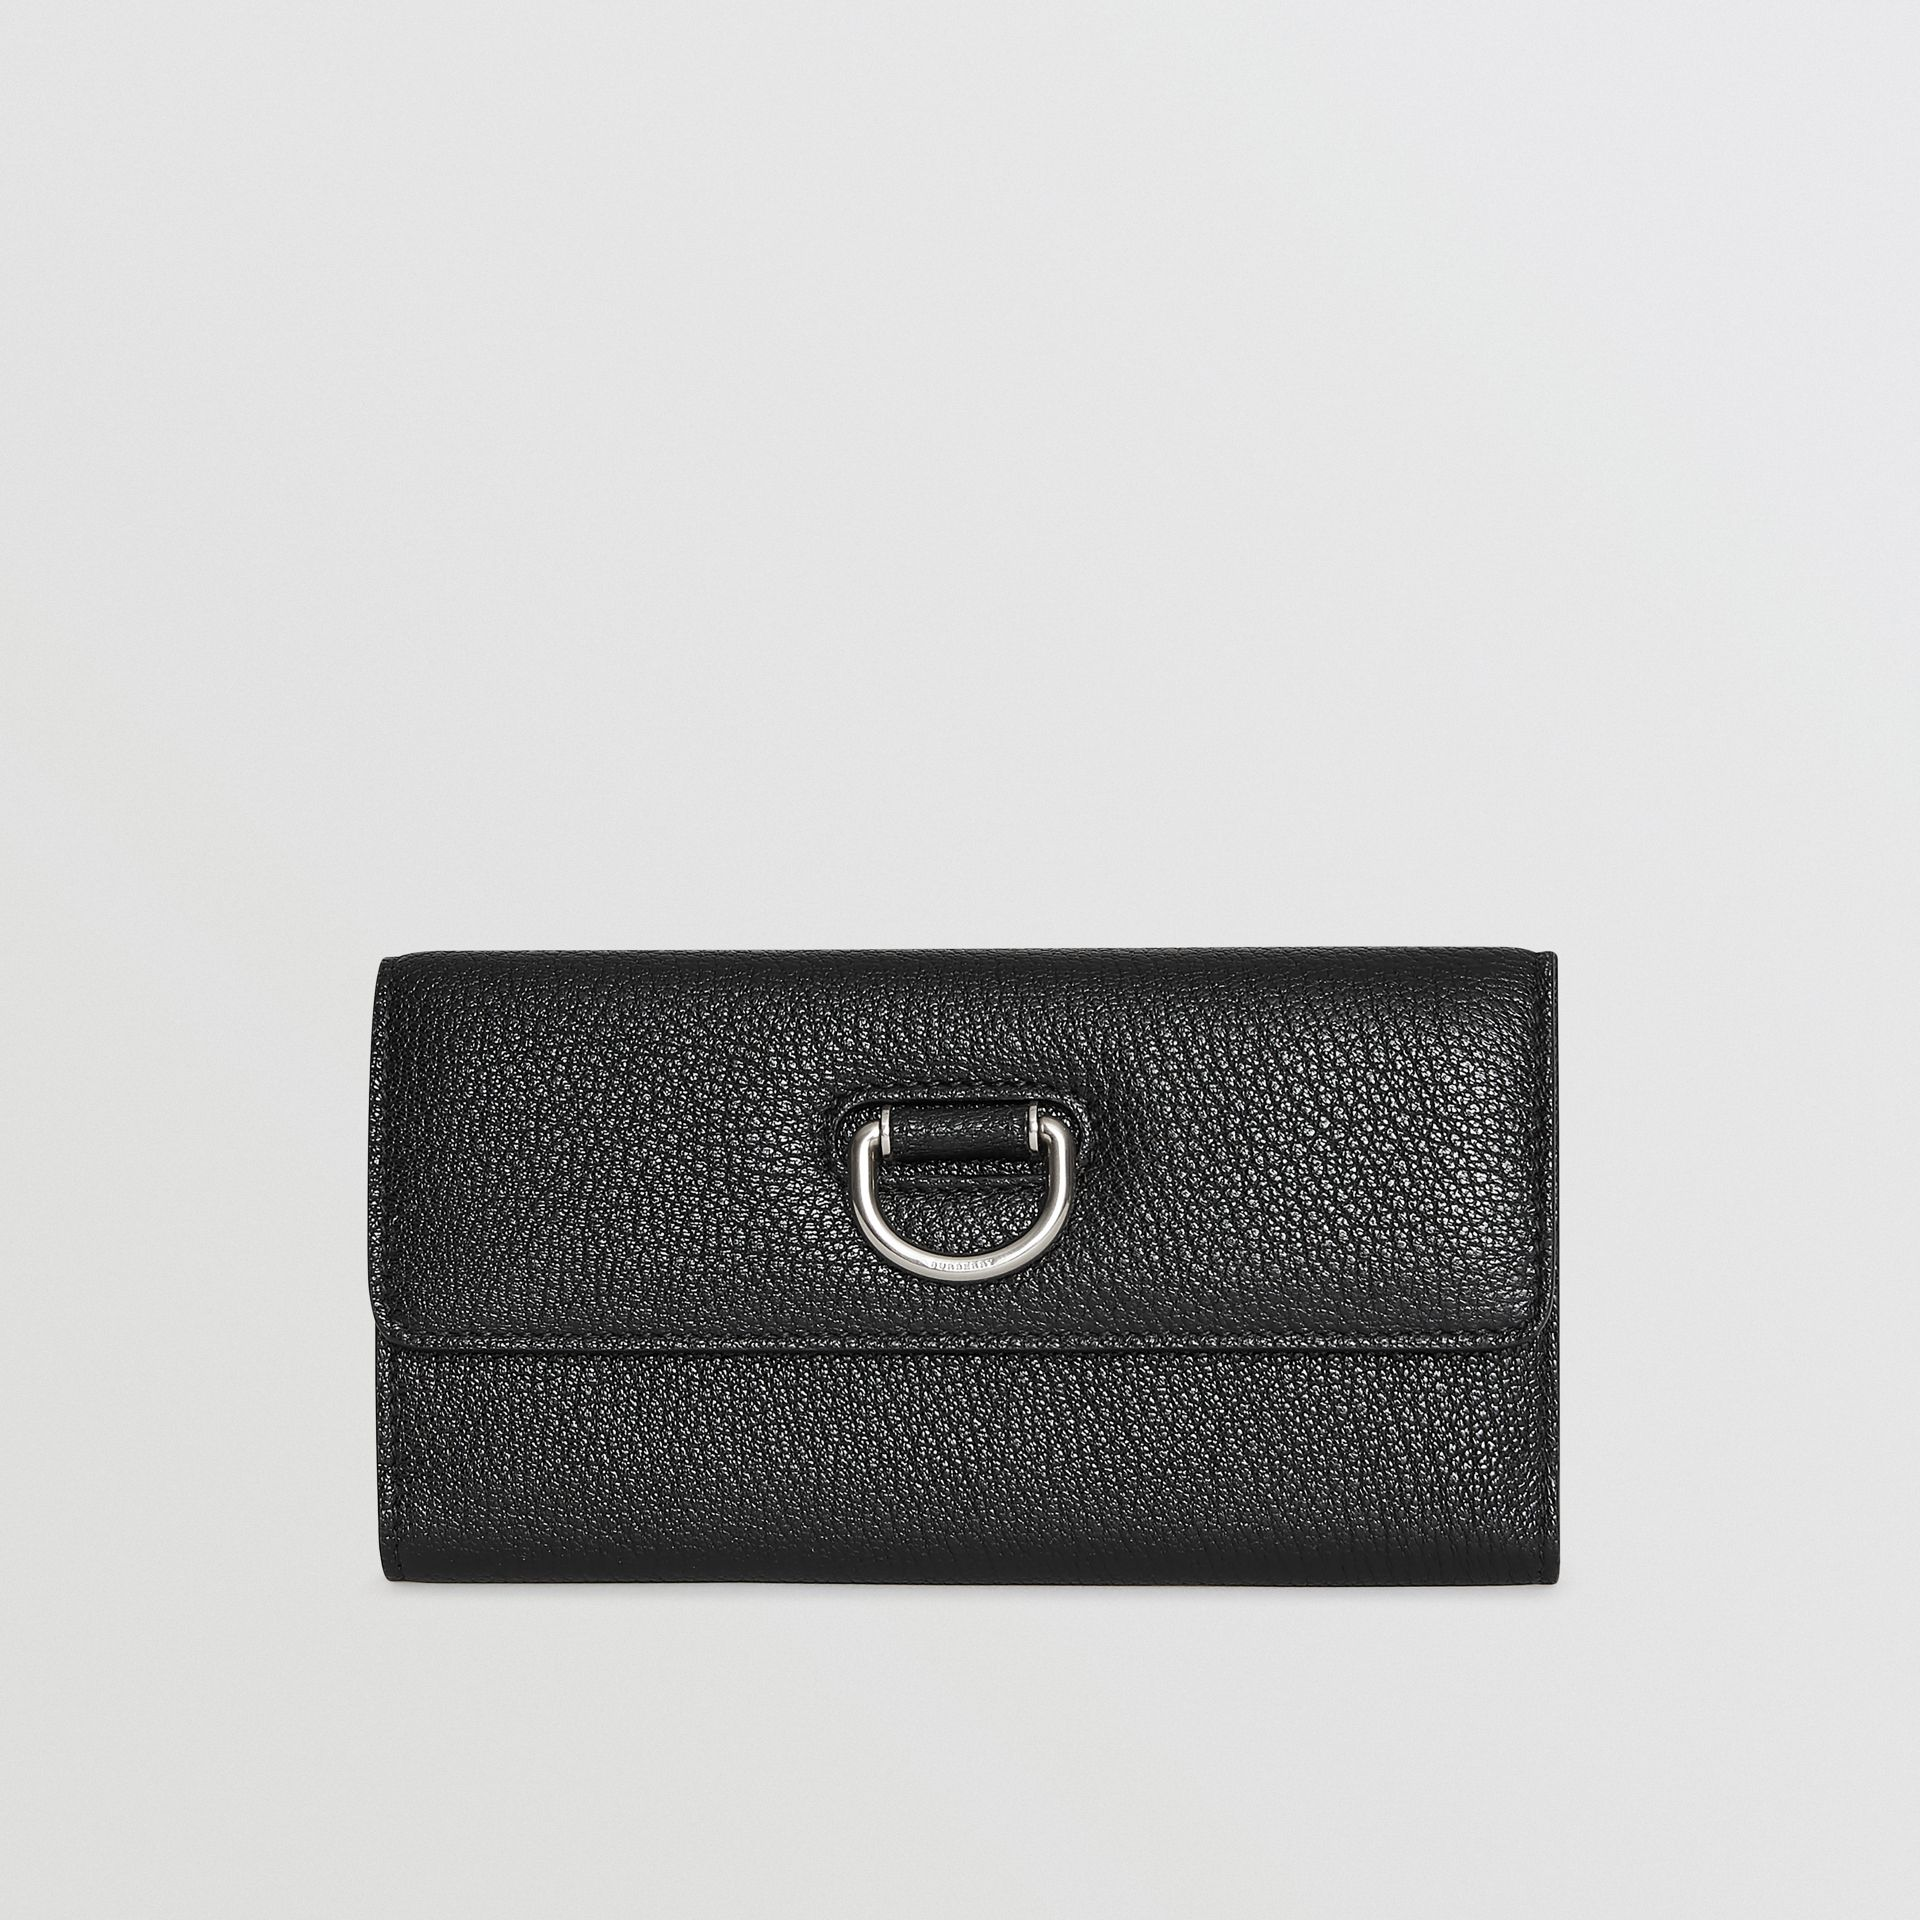 D-ring Grainy Leather Continental Wallet in Black - Women | Burberry - gallery image 5